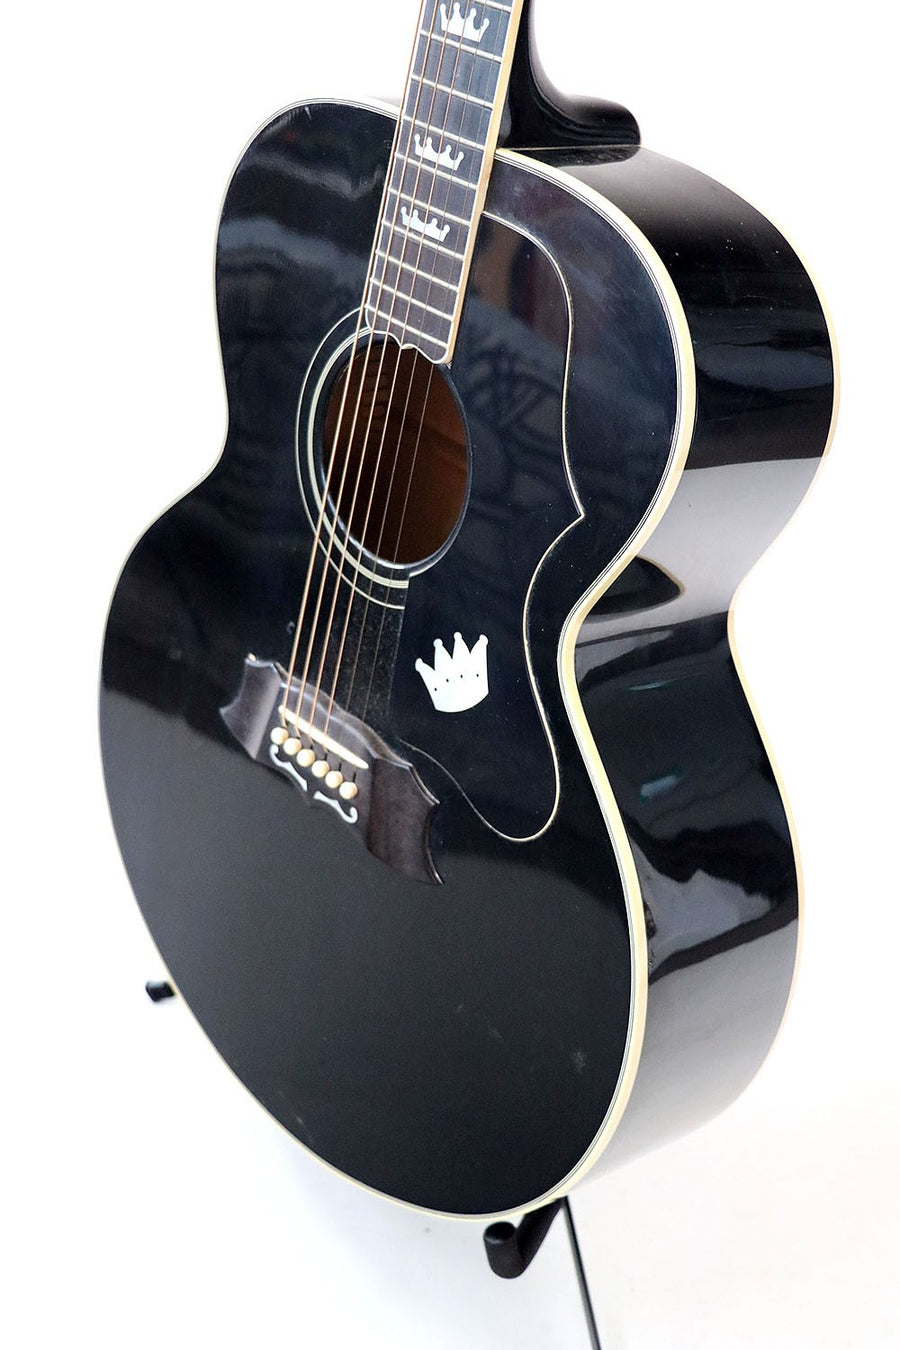 Gibson J-200 1996 Elvis Presley 'King of Rock' Ltd Ed